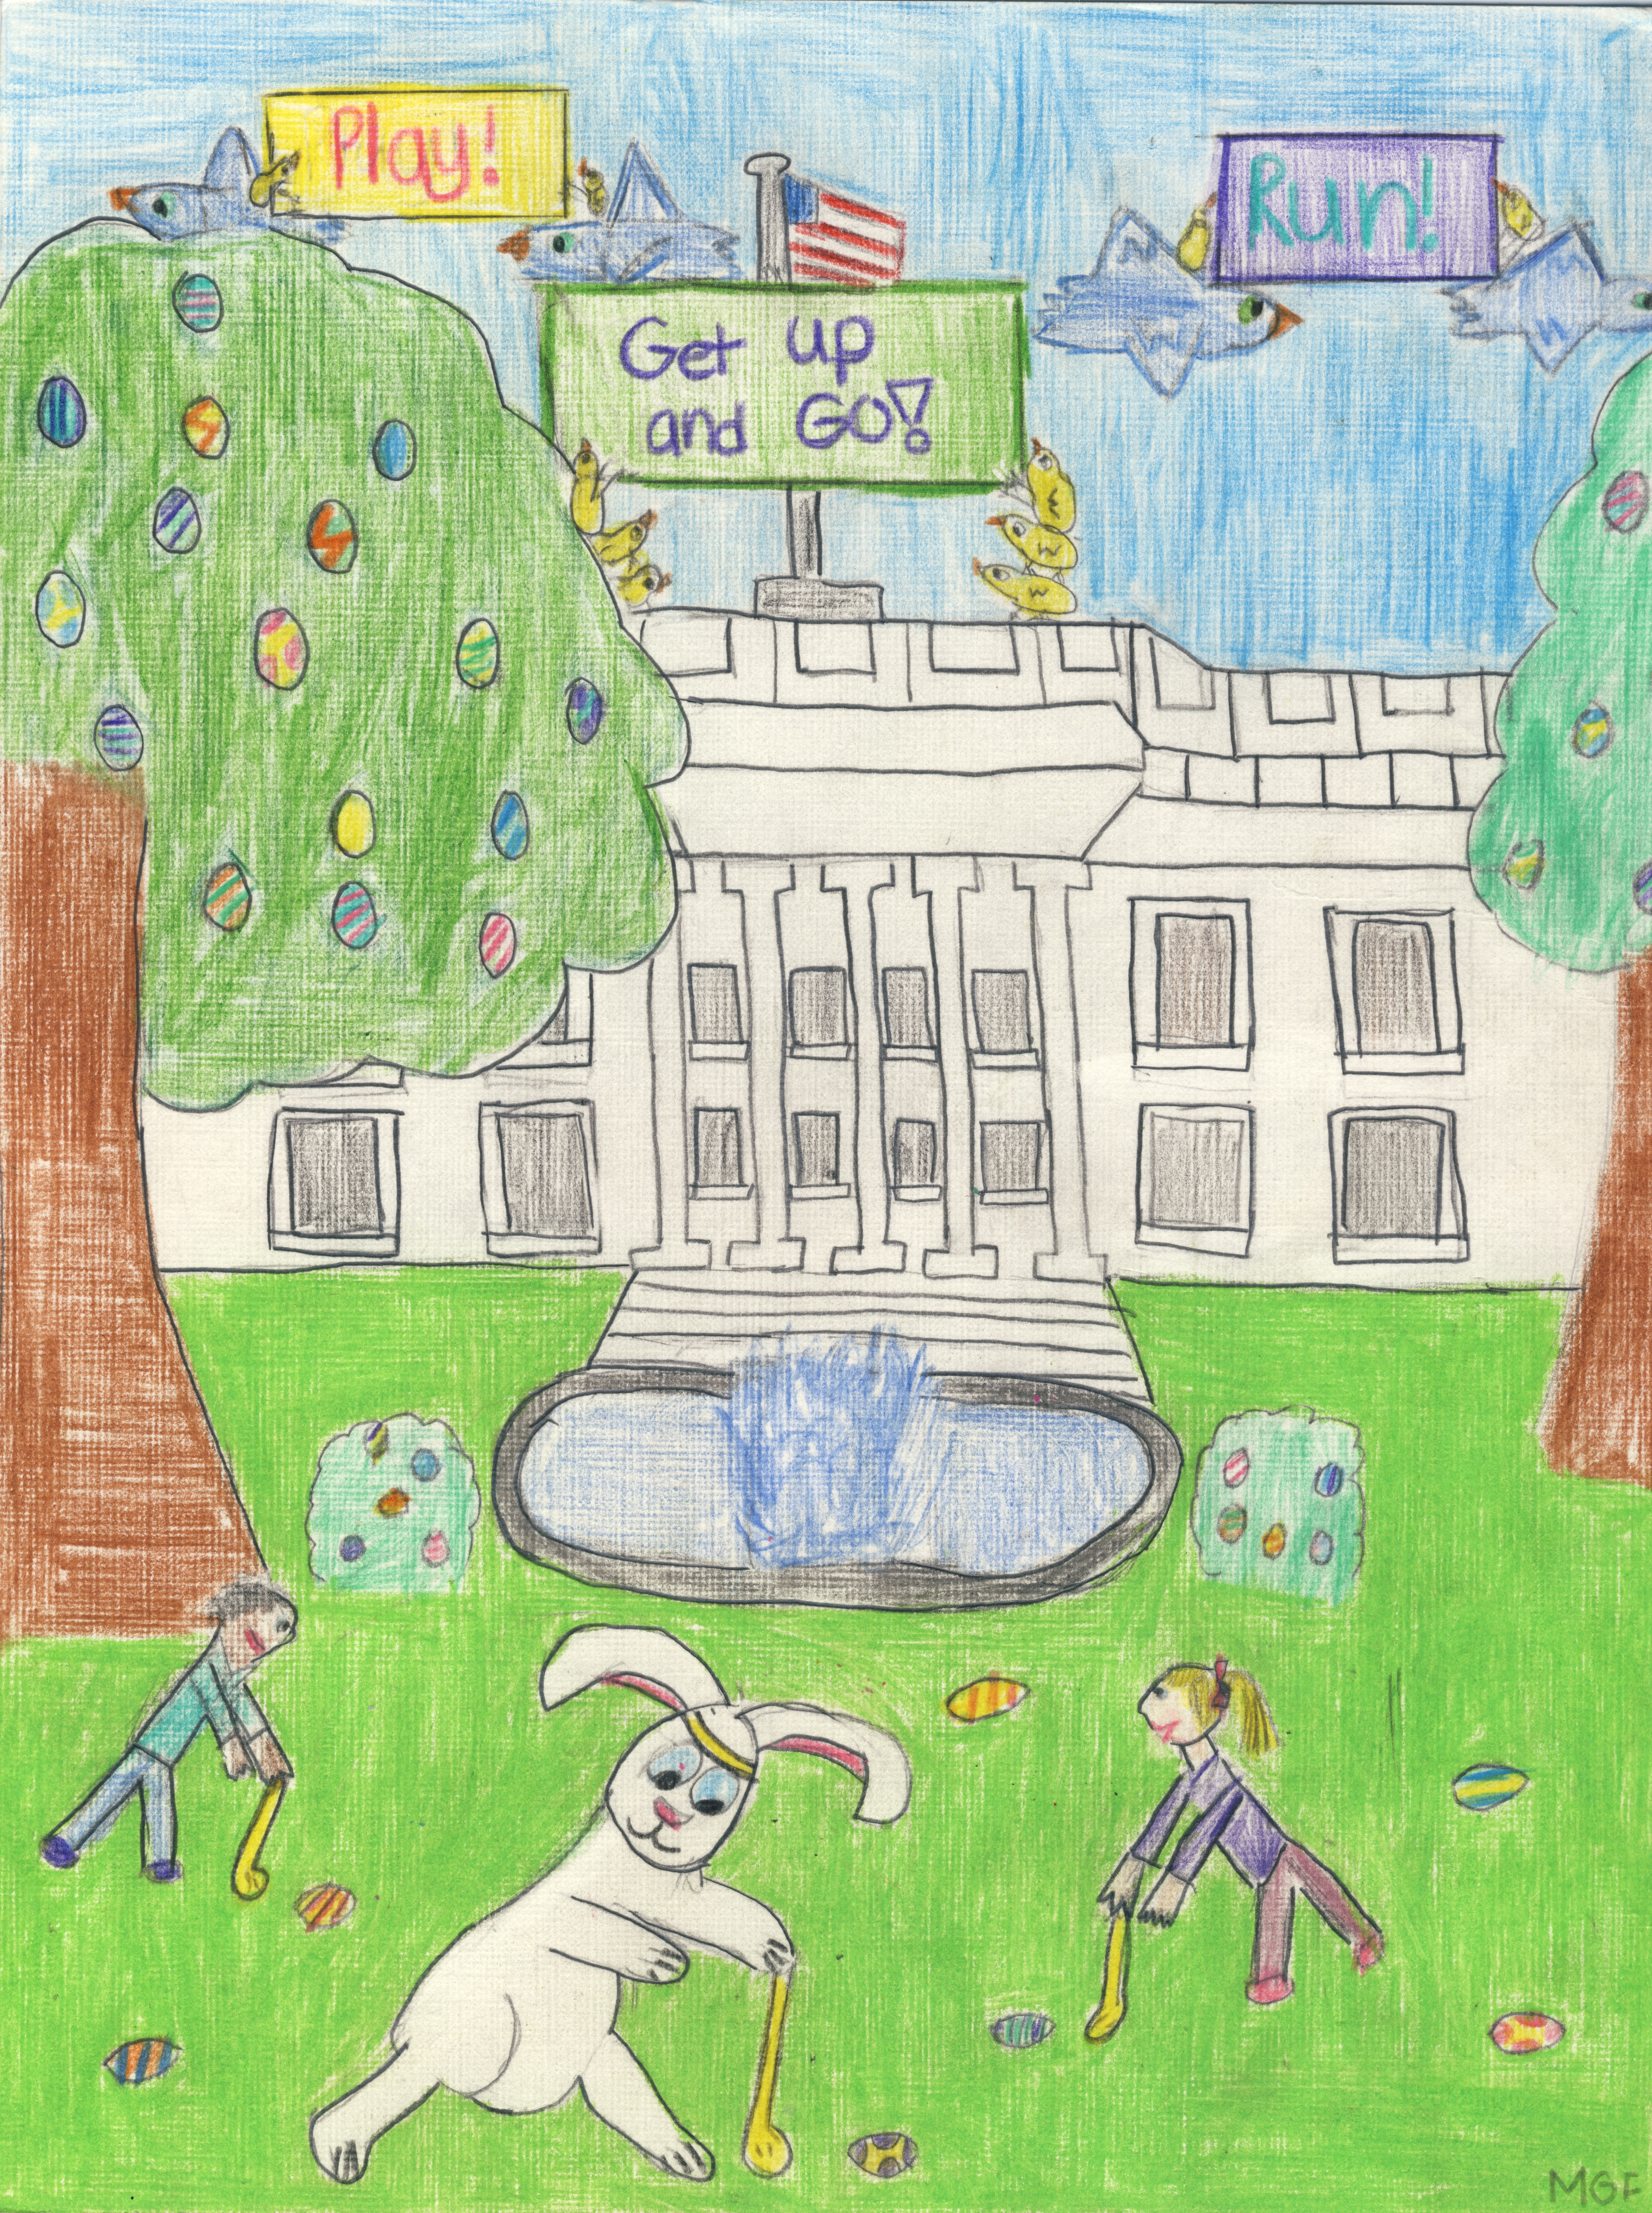 Easter Egg Roll cover artwork selected was created by Morgan Ferrans